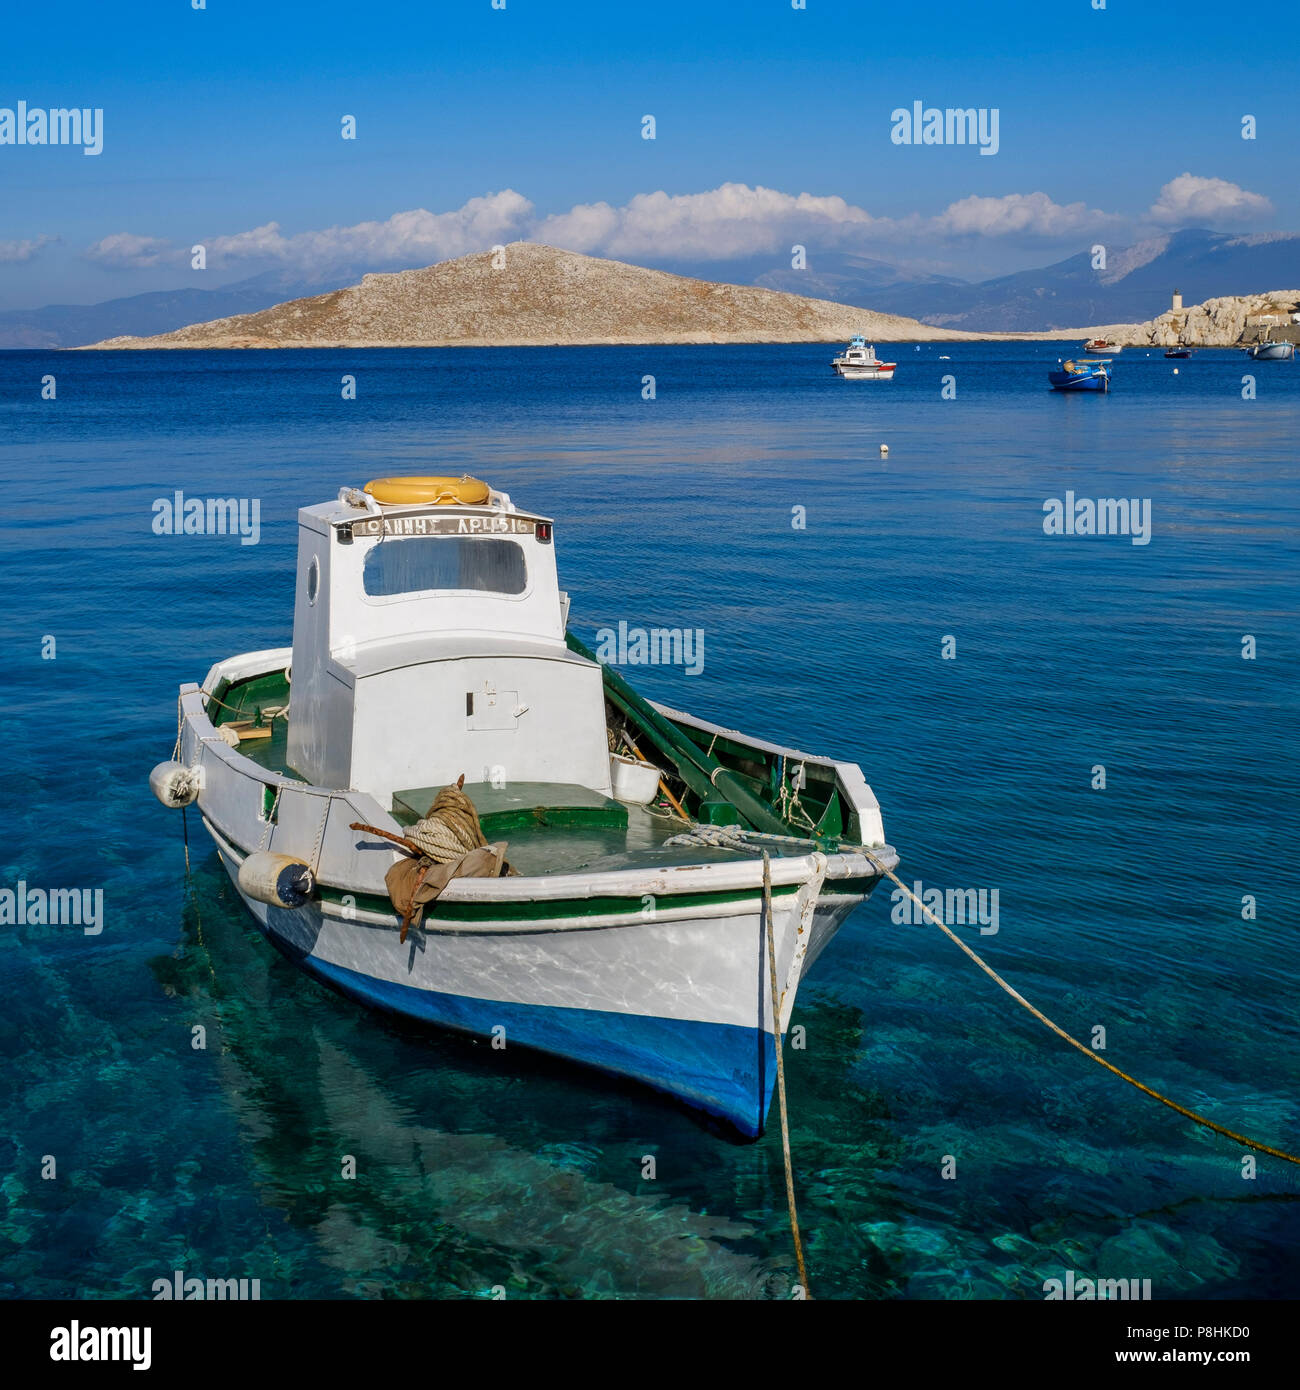 A small blue and white fishing boat in Halki harbor. - Stock Image